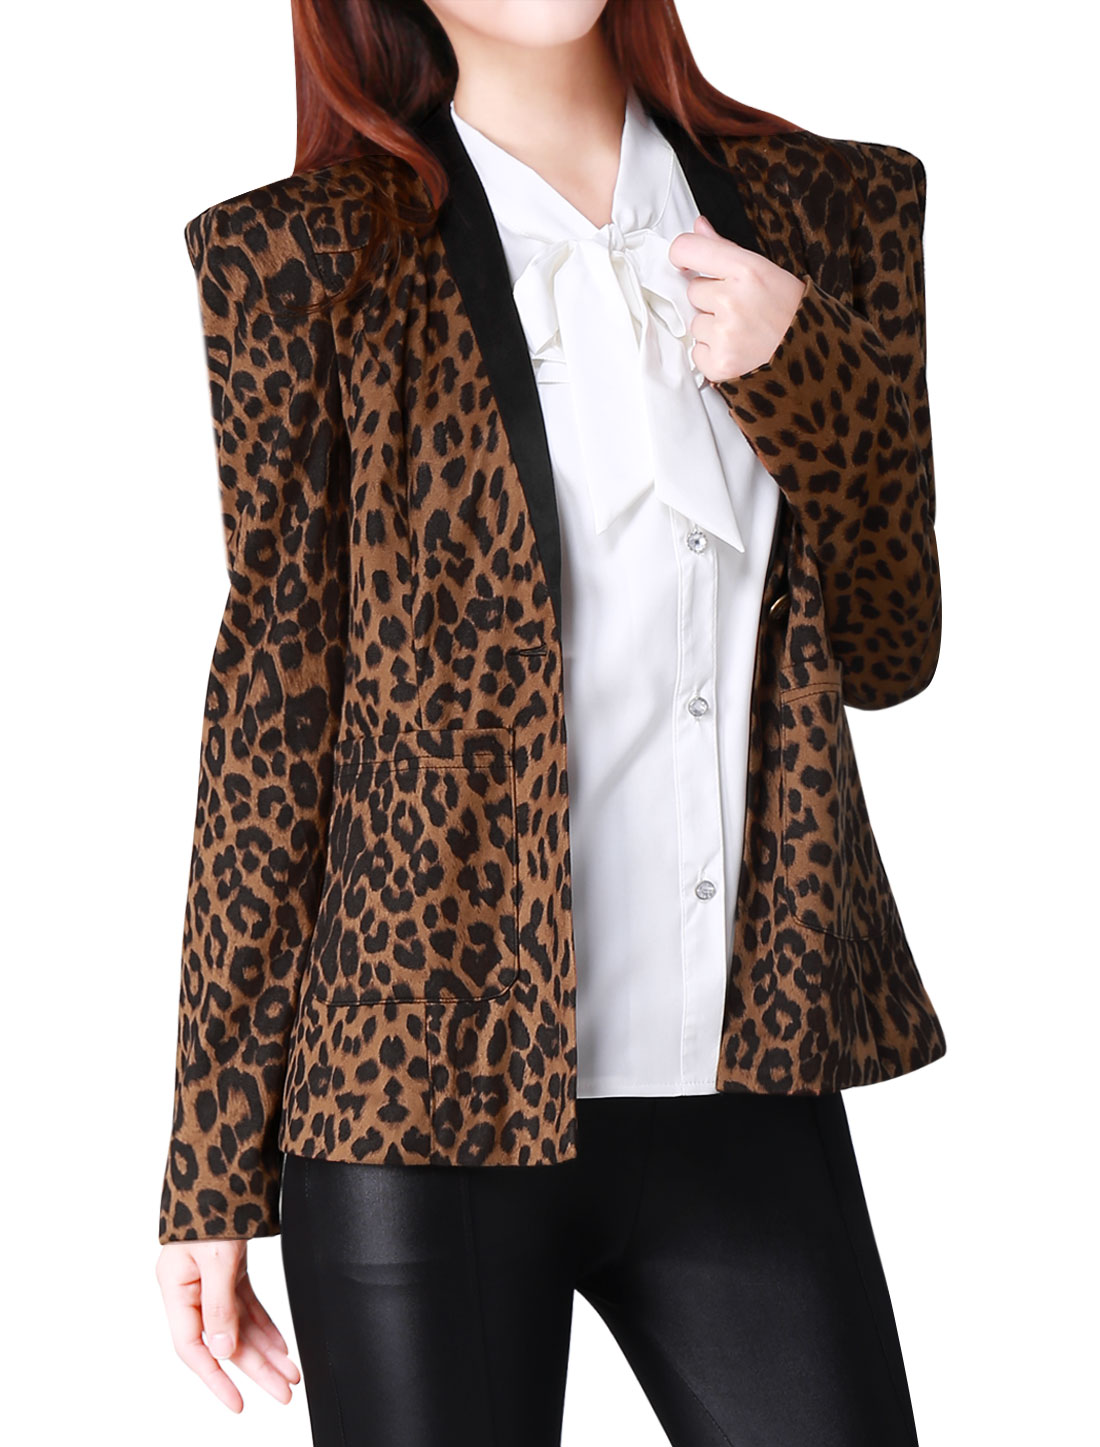 Ladies Leopard Prints Two Pockets Front Blazer Coffee Light Brown XL